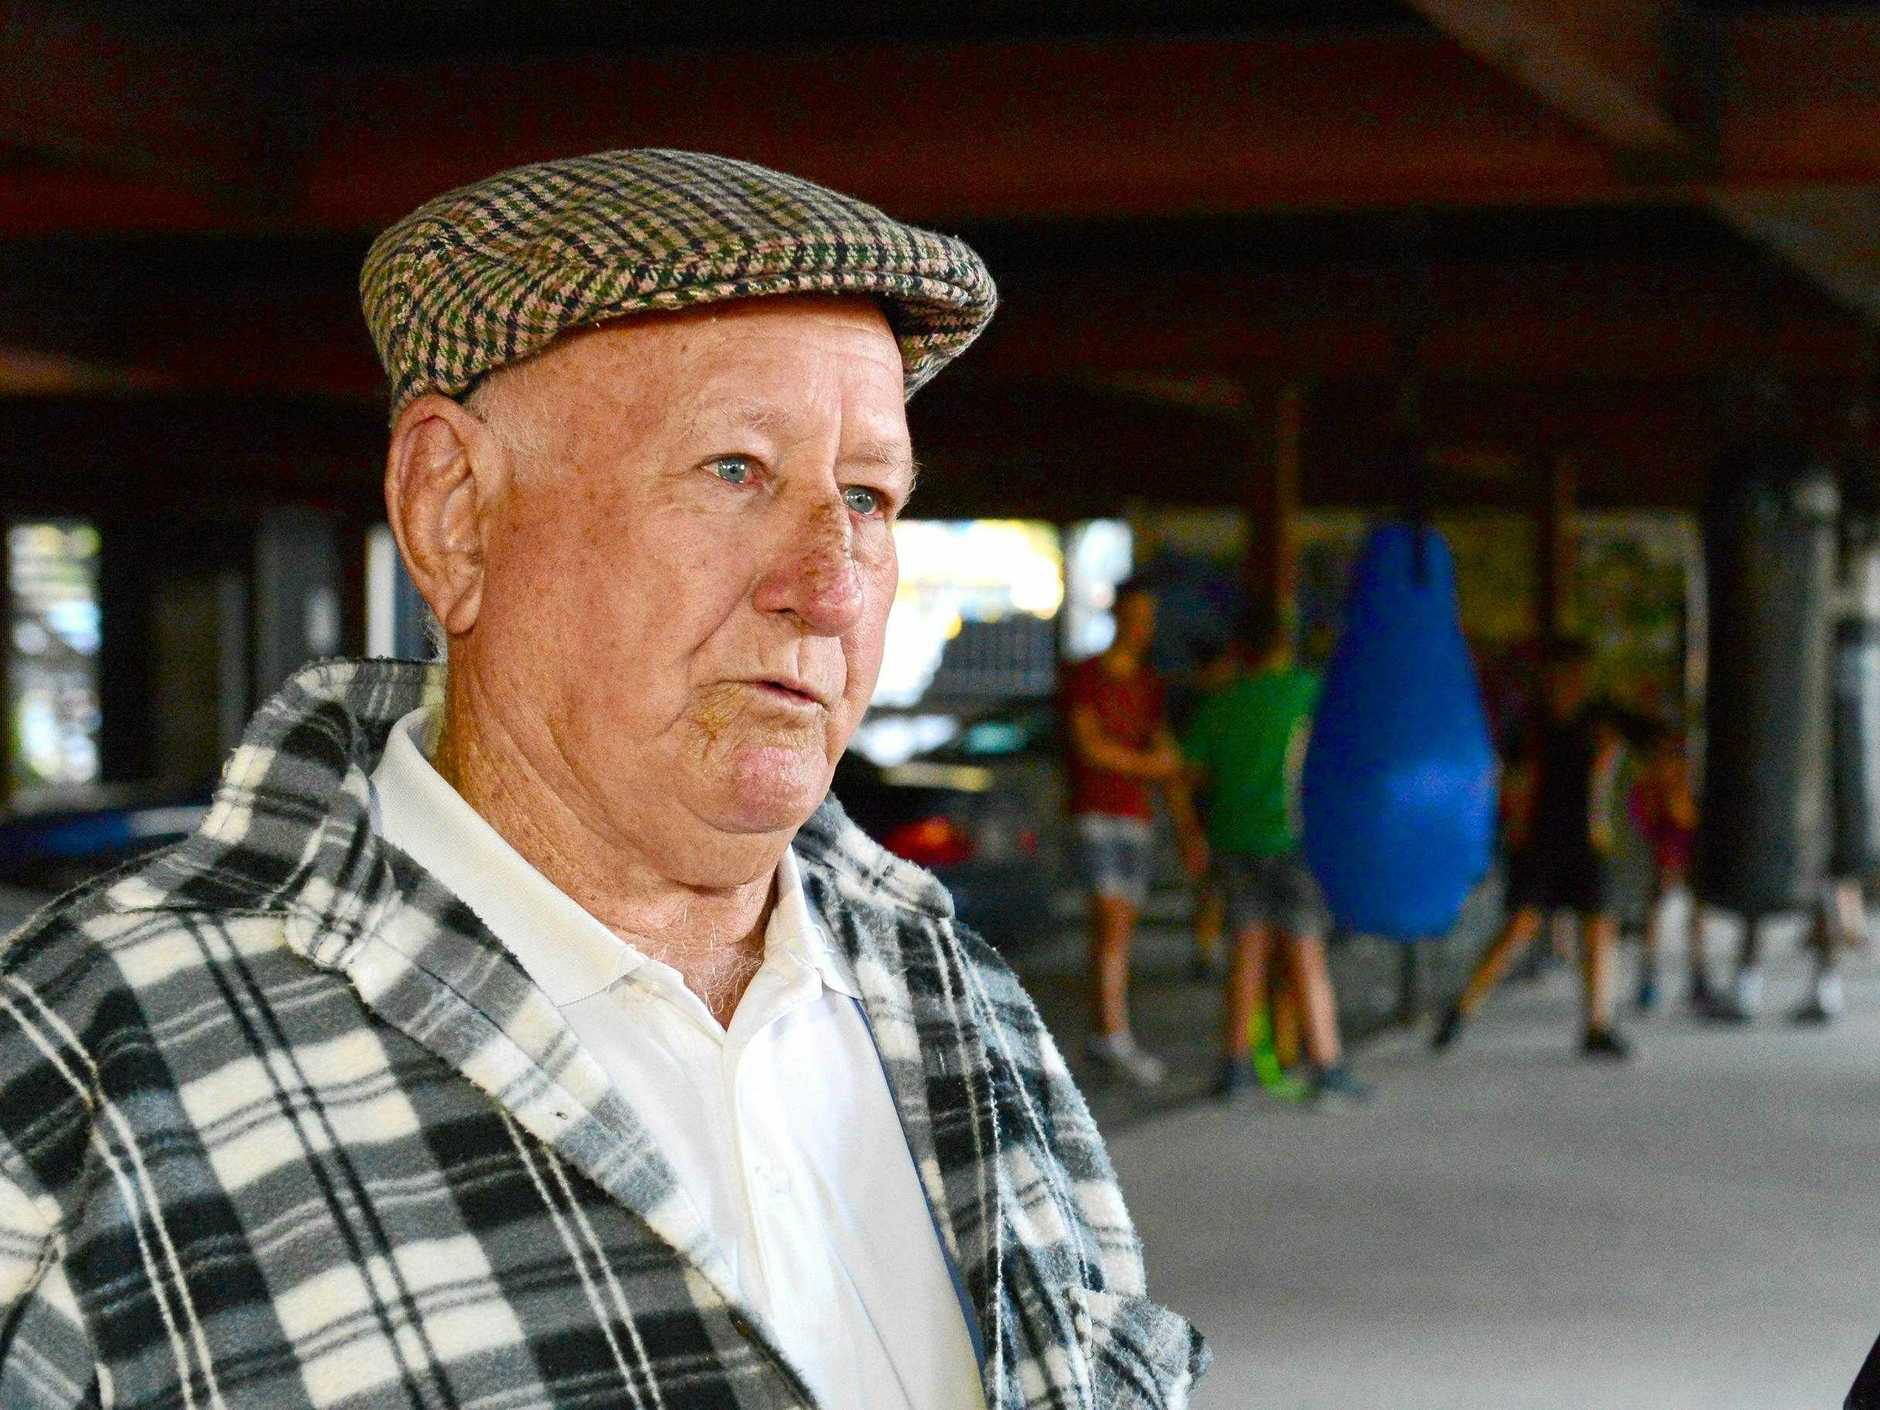 Sam's former trainer Des Upton remembered the years he trained the talented boxer.